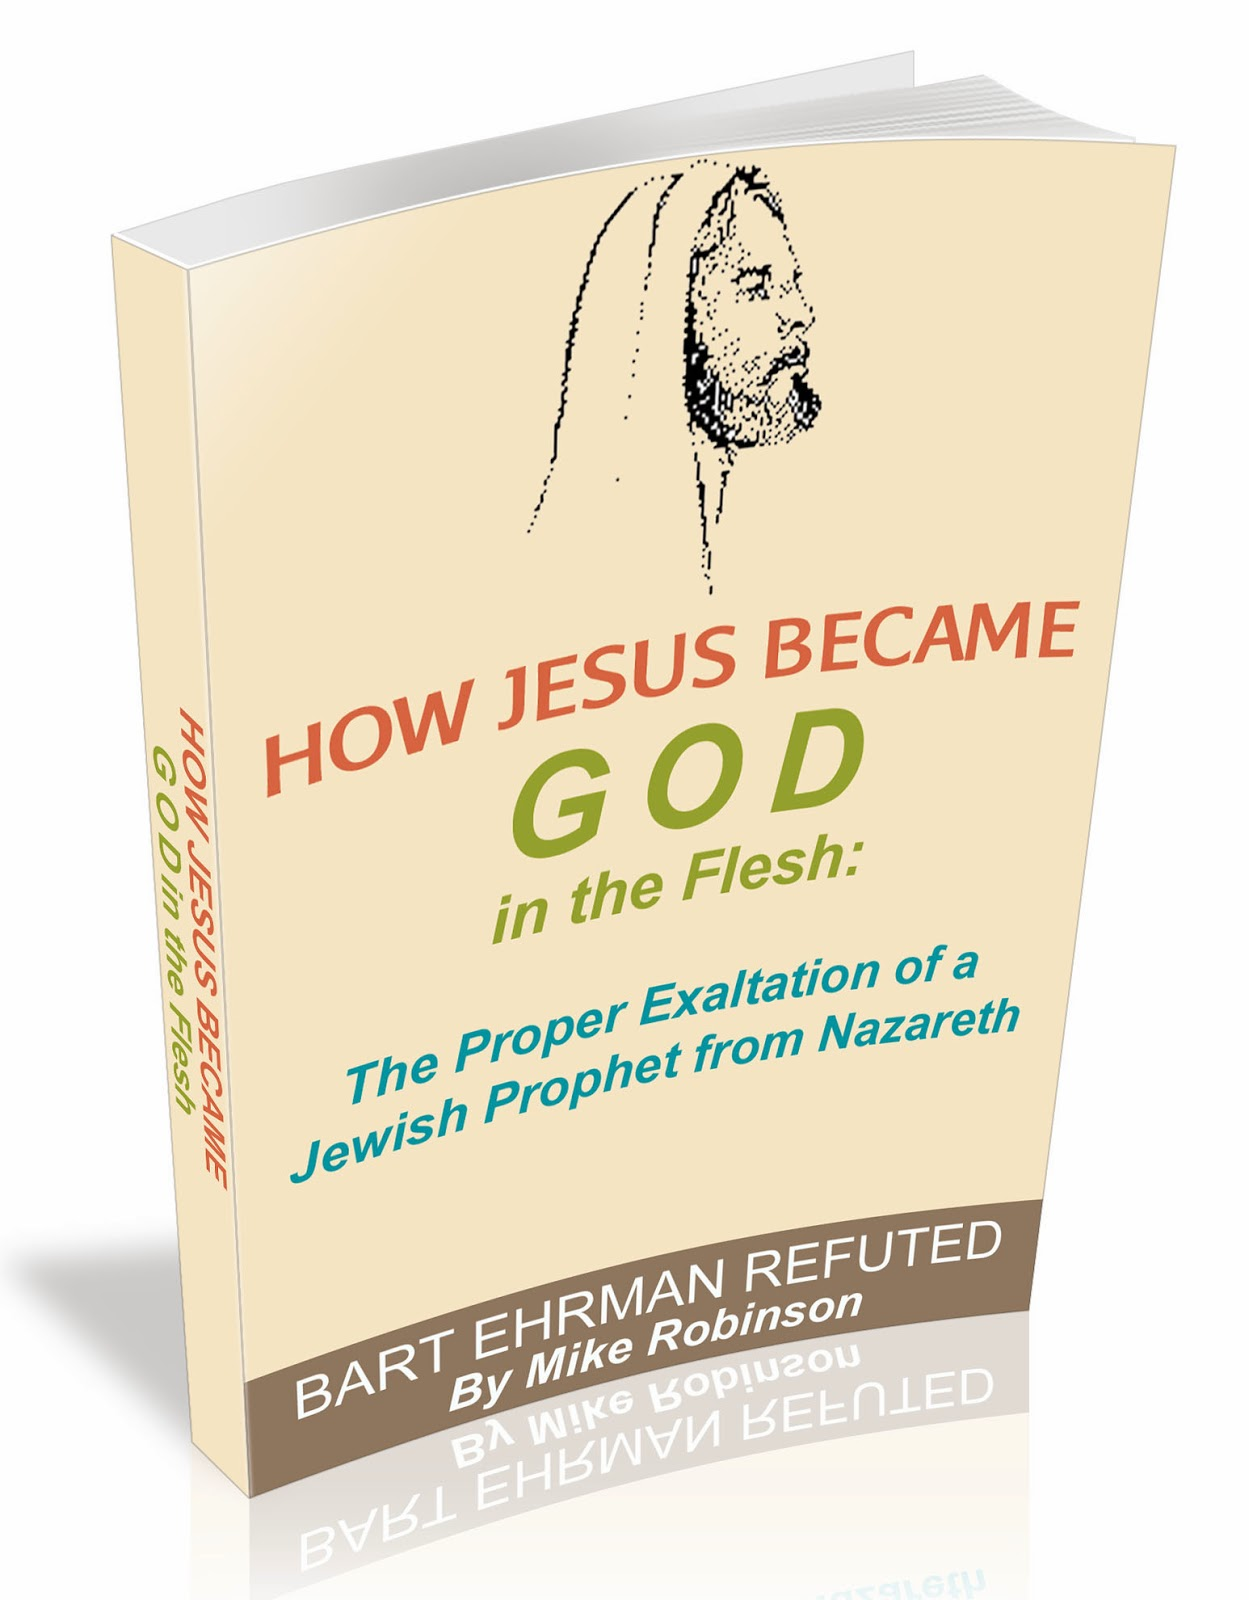 ehrman how Jesus became God